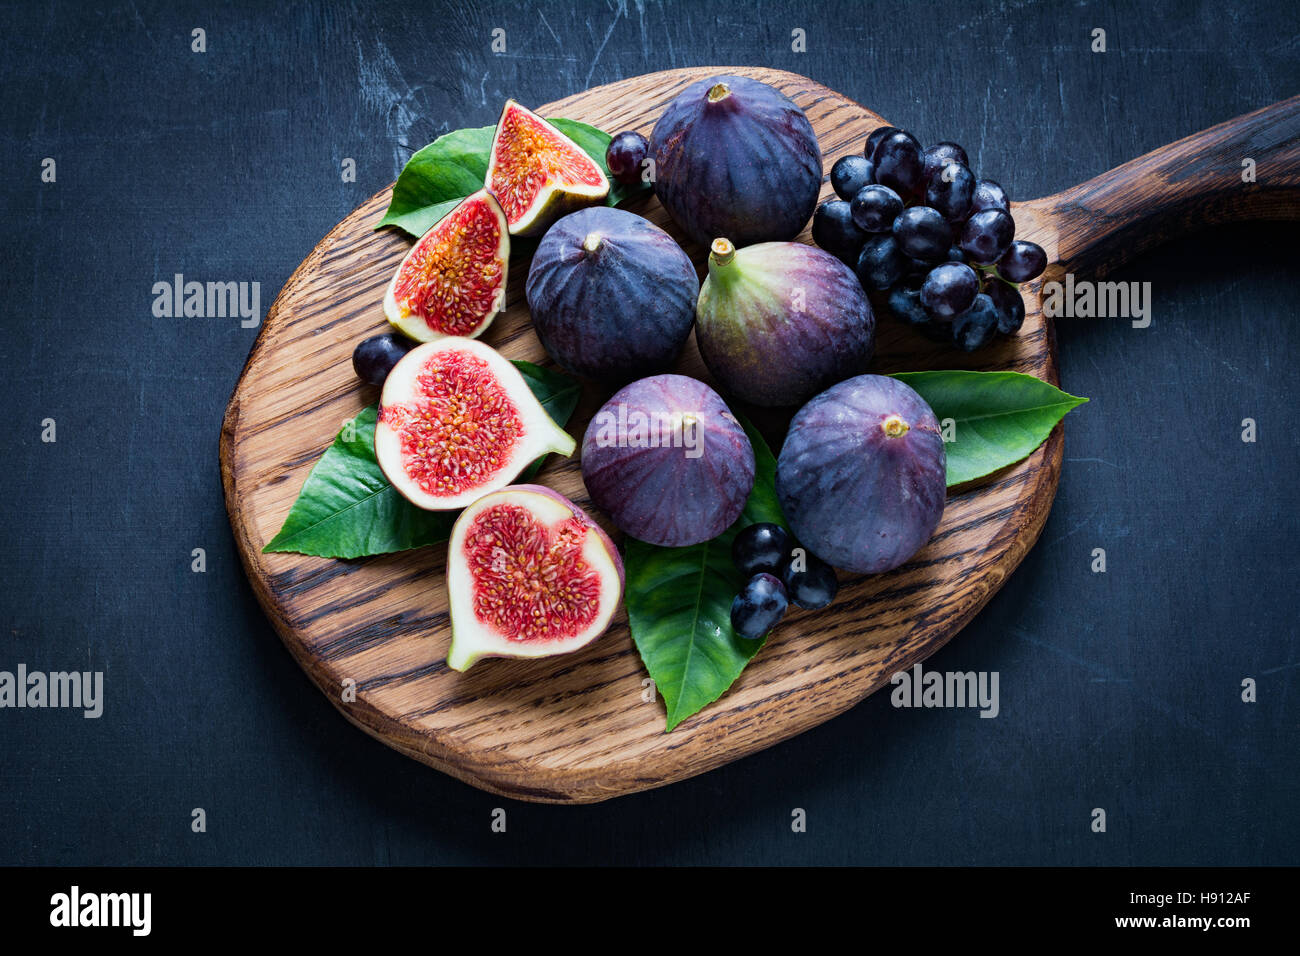 Fruit plate: fresh figs and black grapes 'Isabella' on wooden cutting board. Horizontal view - Stock Image